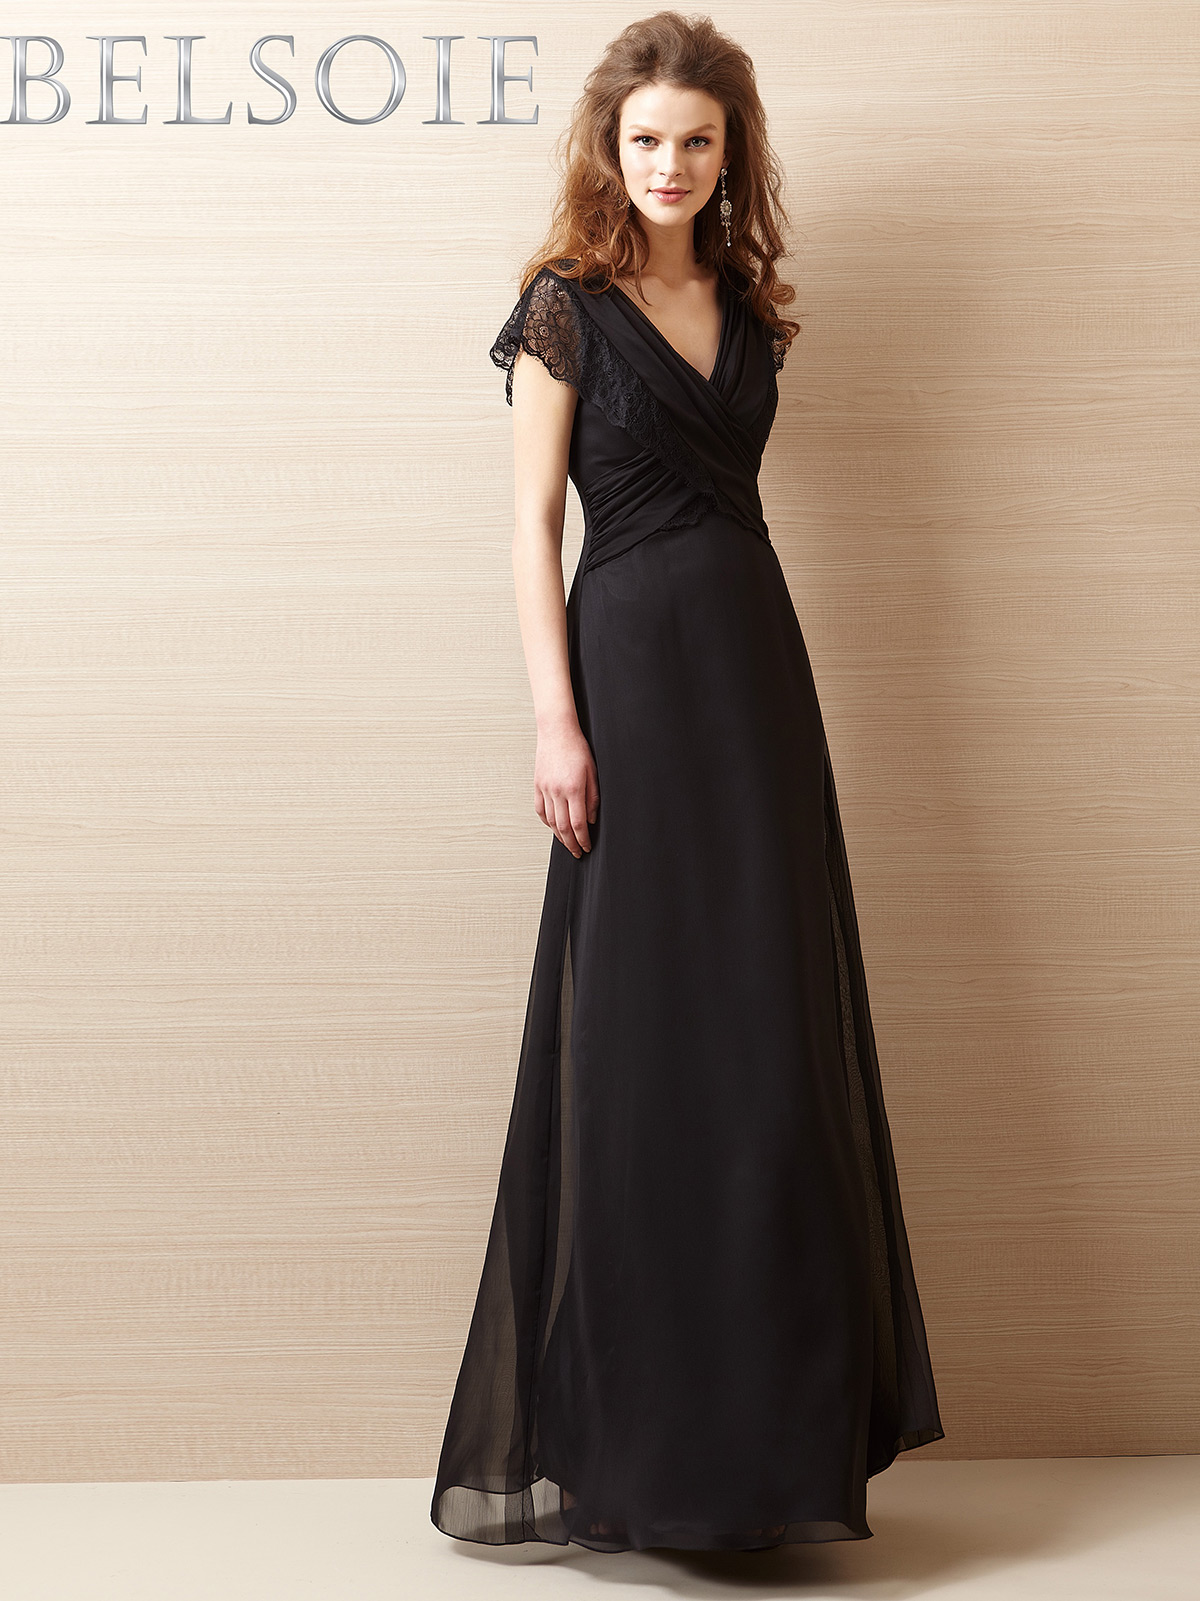 Cap sleeves bridesmaid dress belsoie l144057 belsoie by jasmine bridesmaids l144057 ombrellifo Image collections